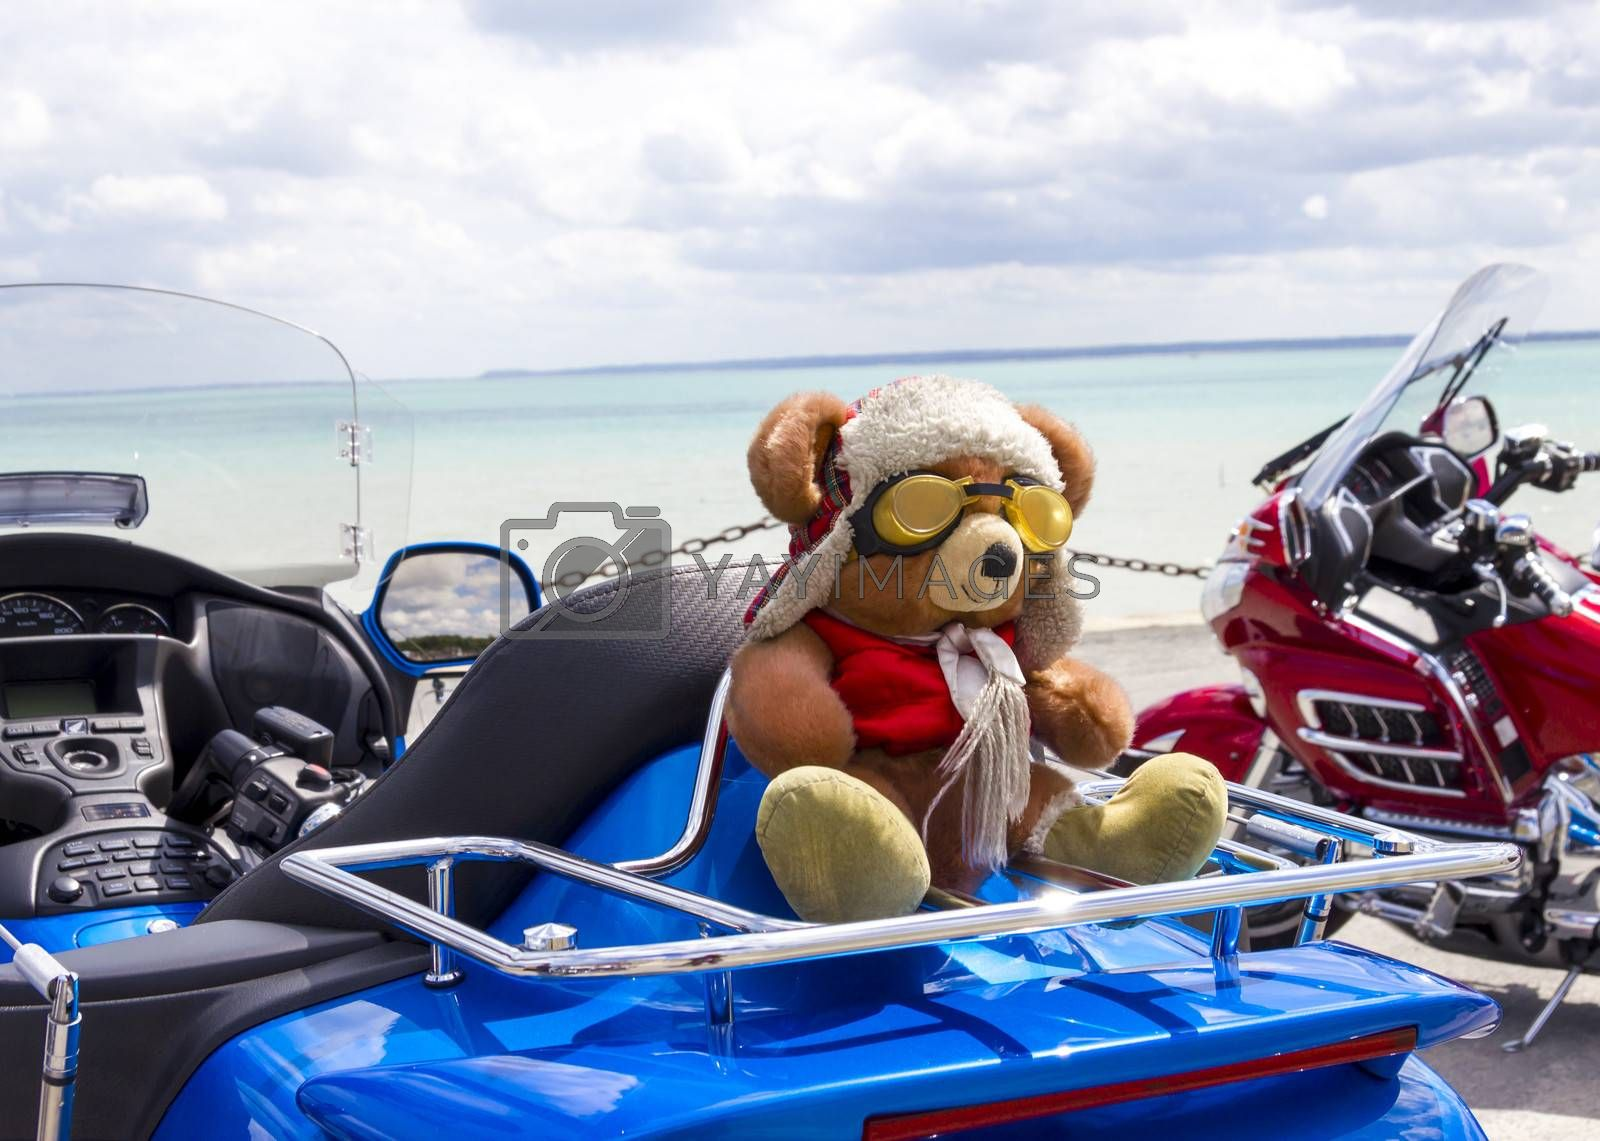 Teddy Bear toy on the blue motorbike on a seashore